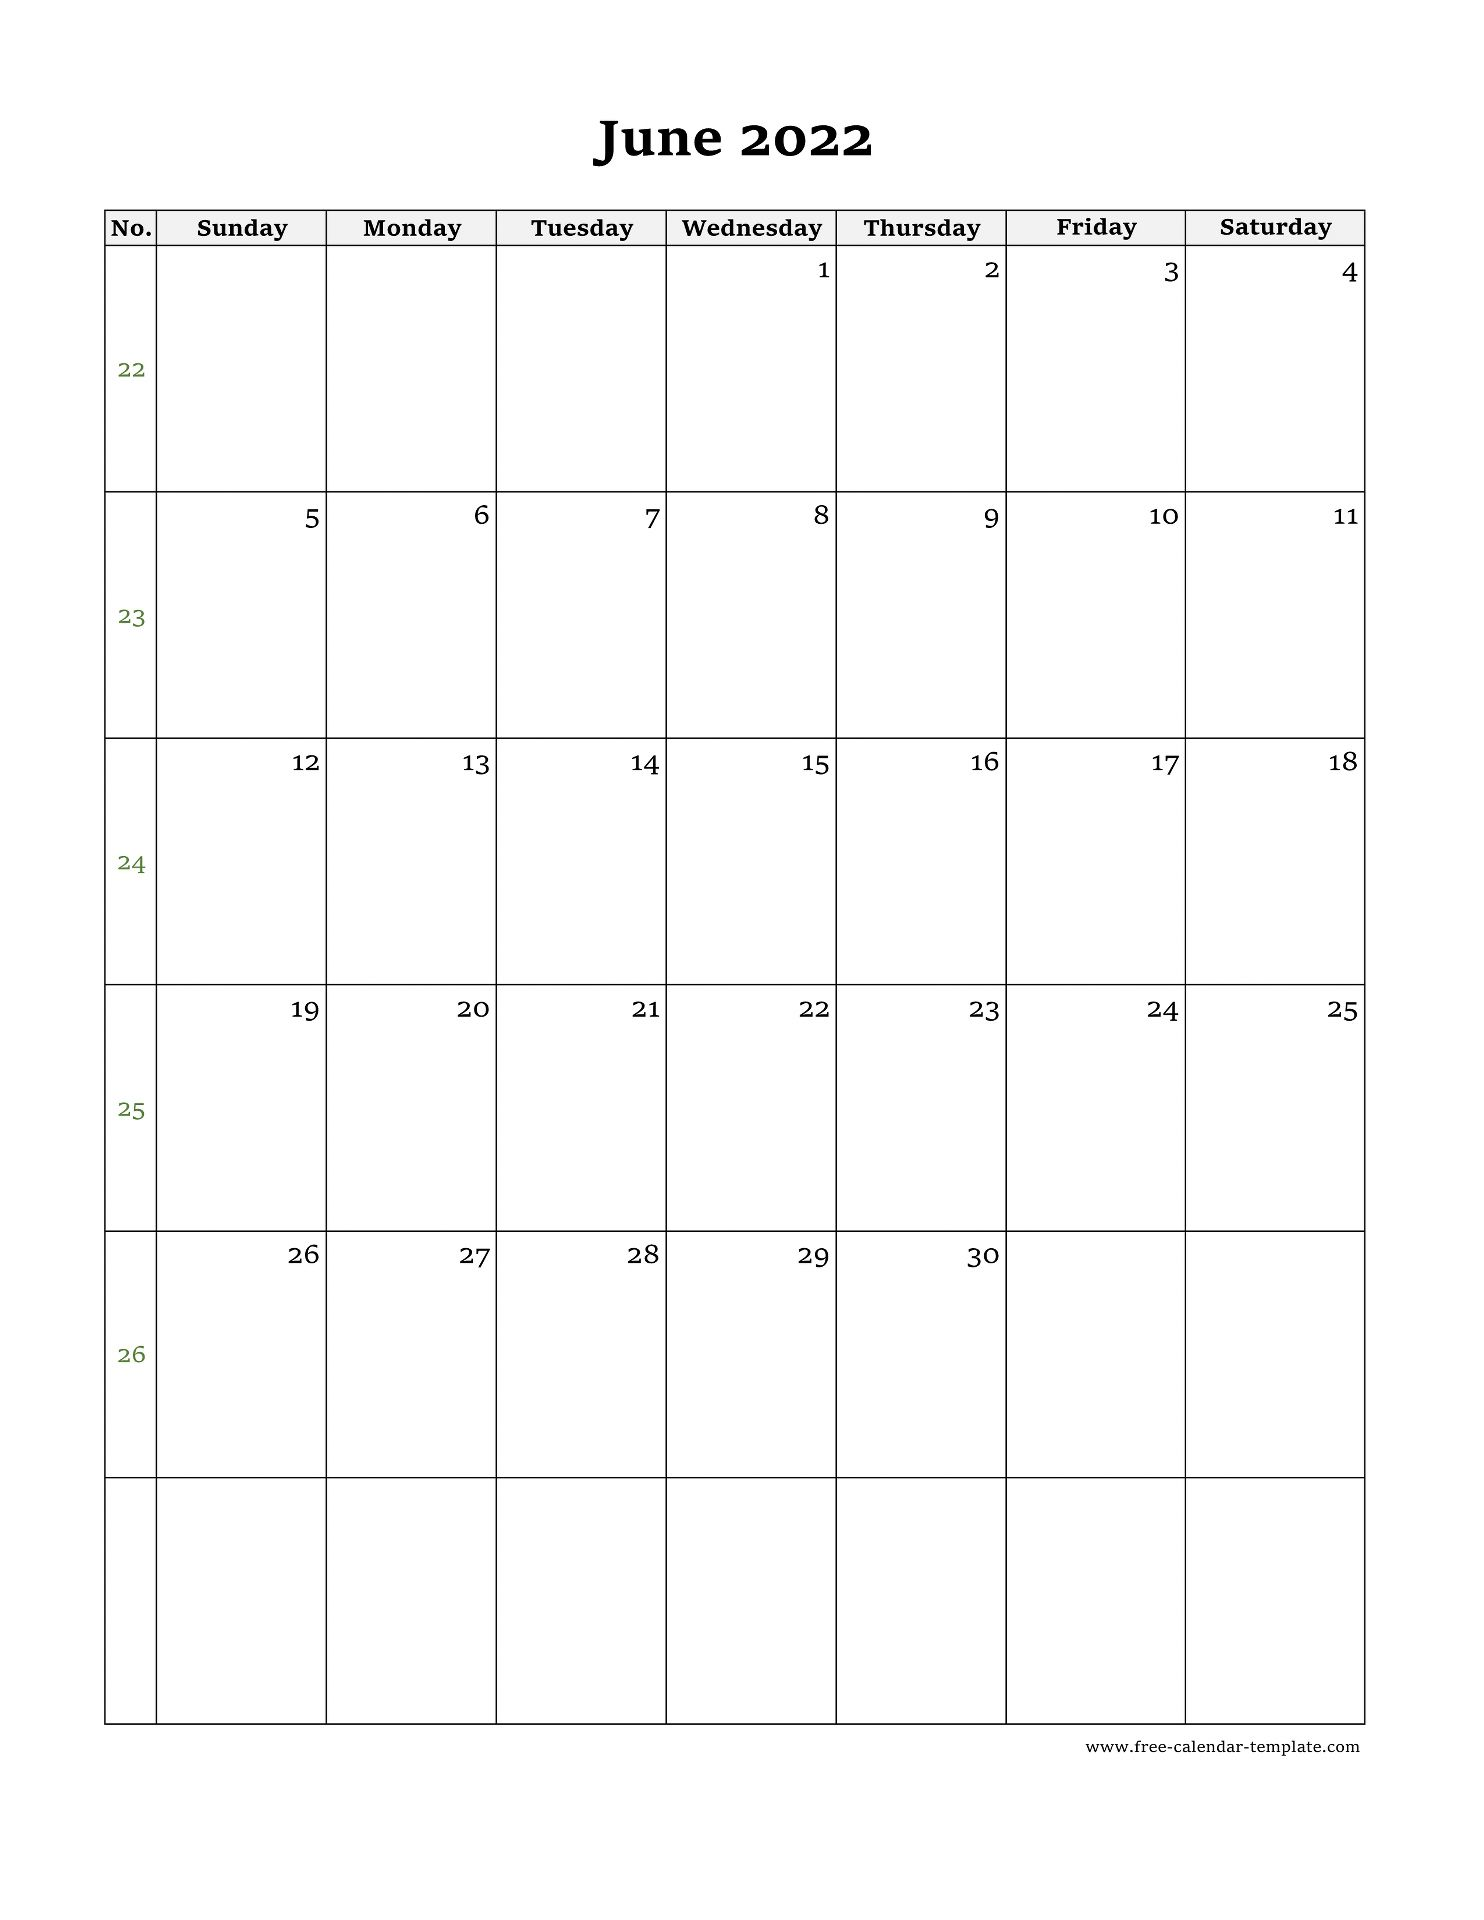 May June Calendar 2022.June Calendar 2022 Simple Design With Large Box On Each Day For Notes Free Calendar Template Com